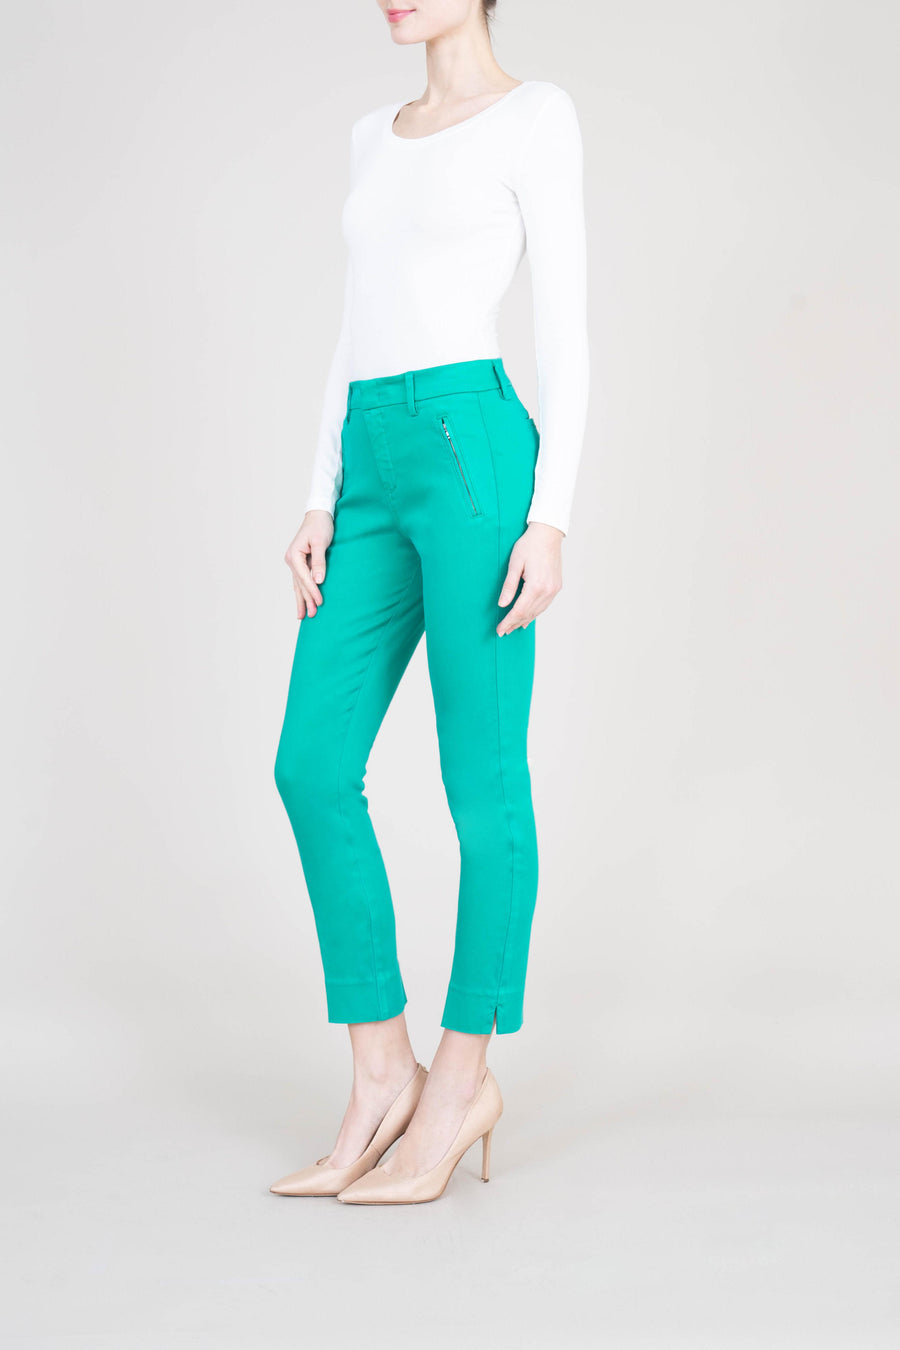 Francis Lacey Double Welt Zip Trouser - level99jeans